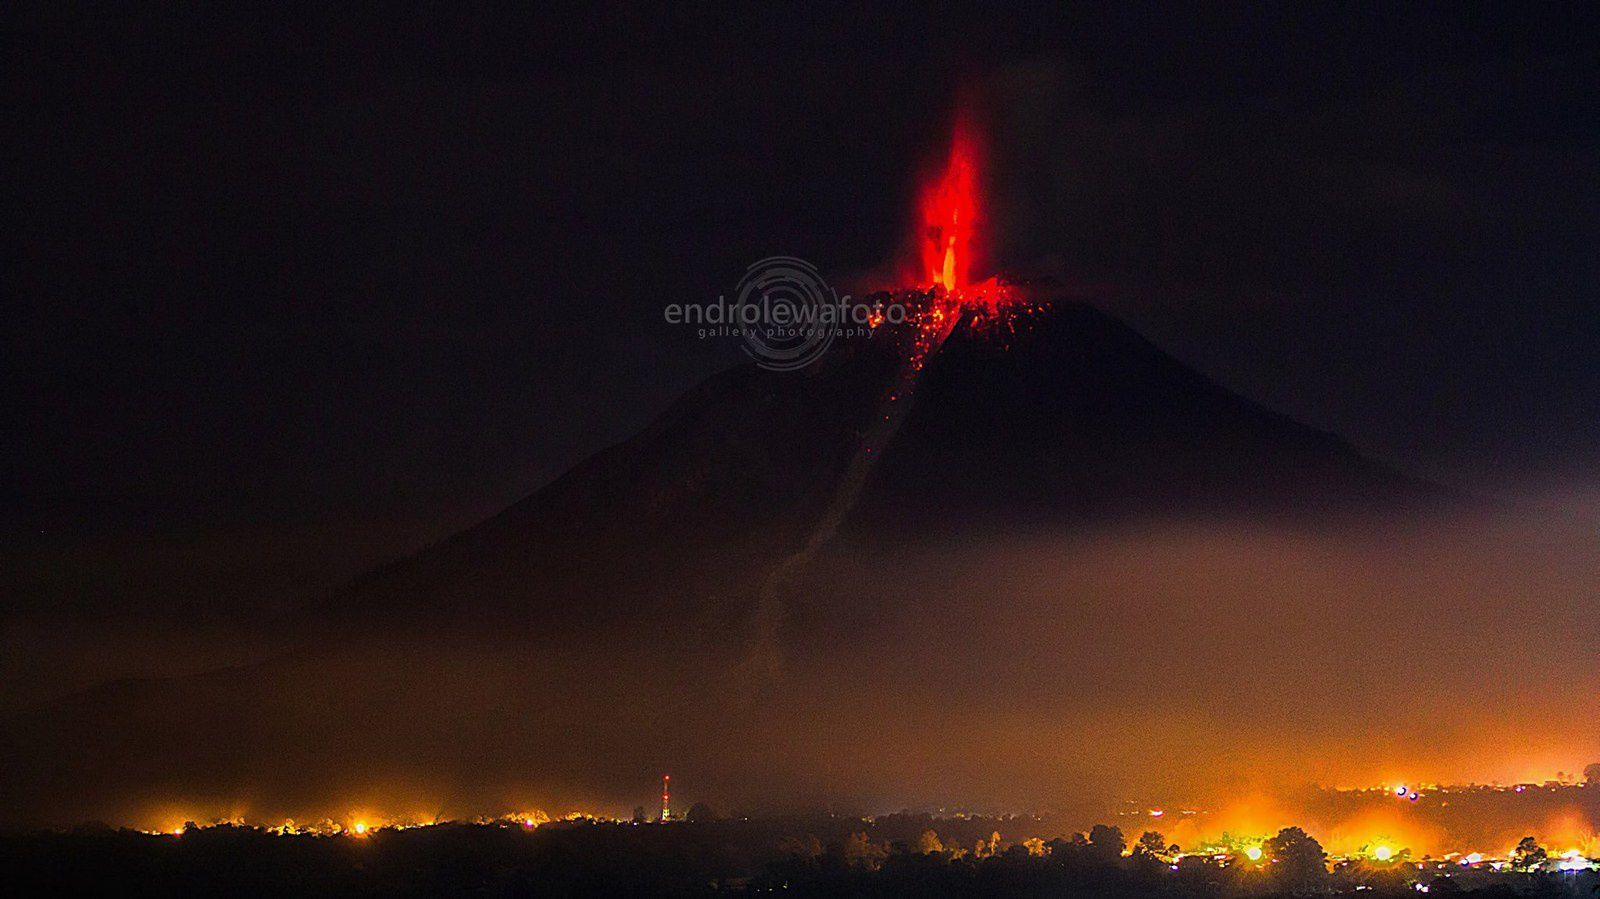 Sinabung - activity 02.08.2016 / 7:47 p.m. loc.- photo endrolewa